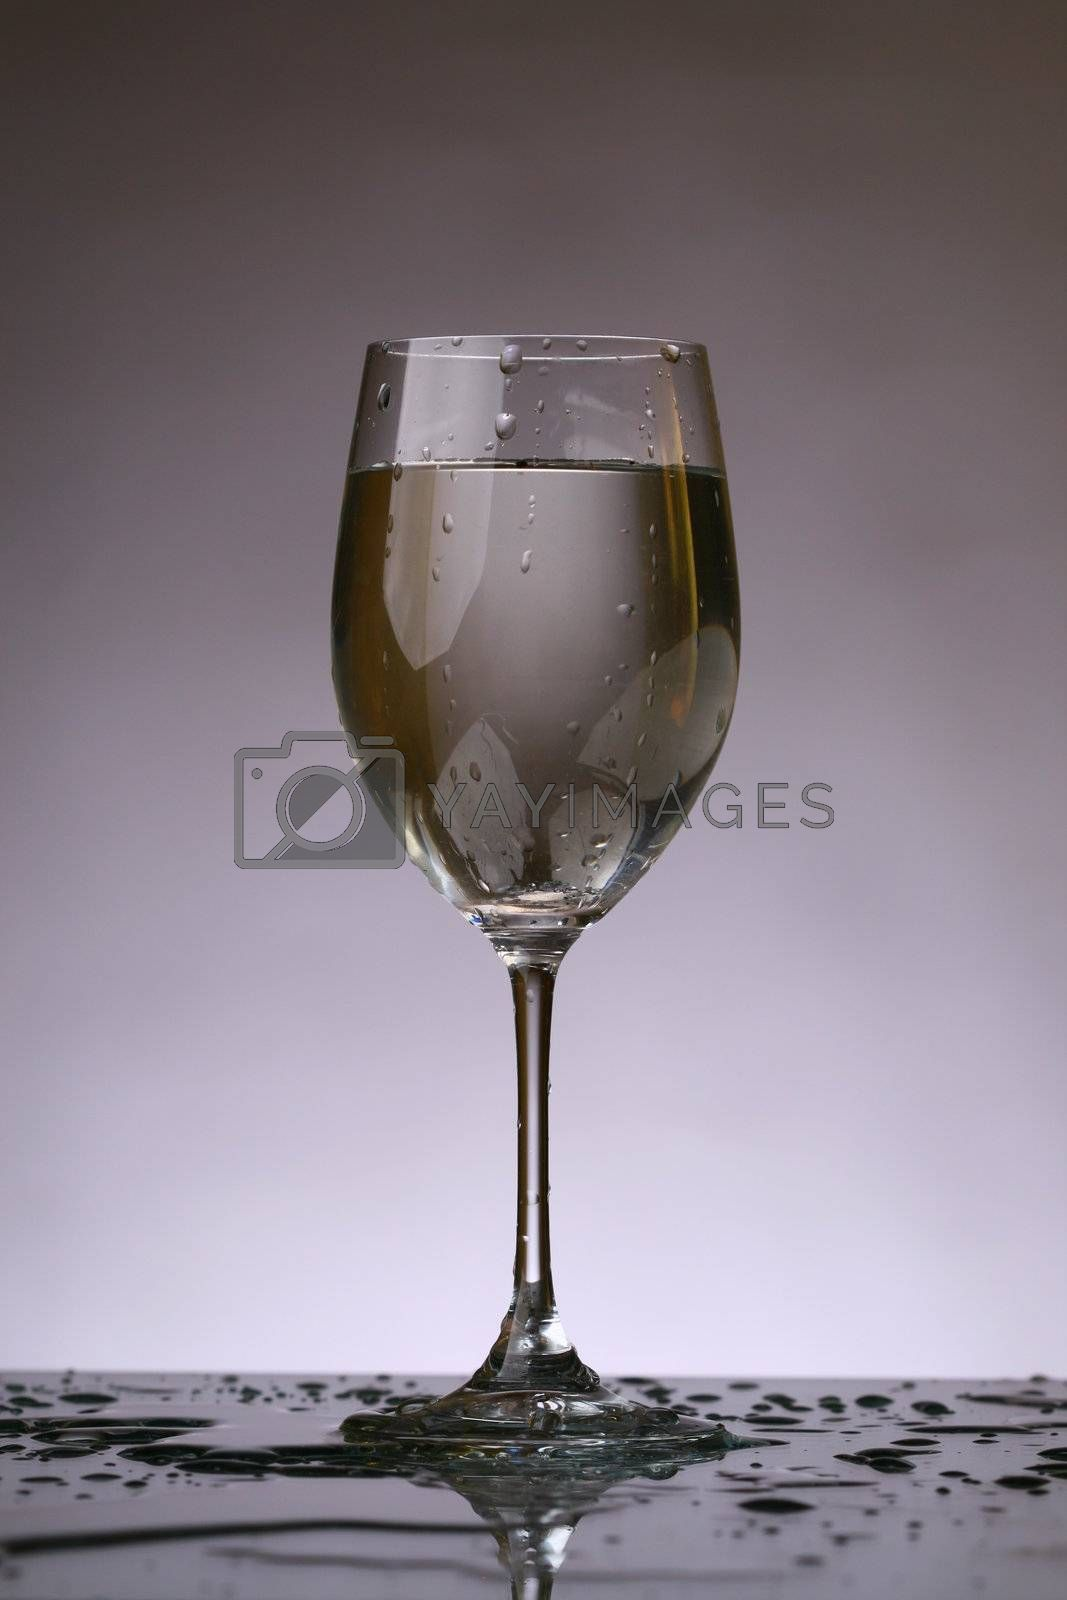 wine glass in dark place